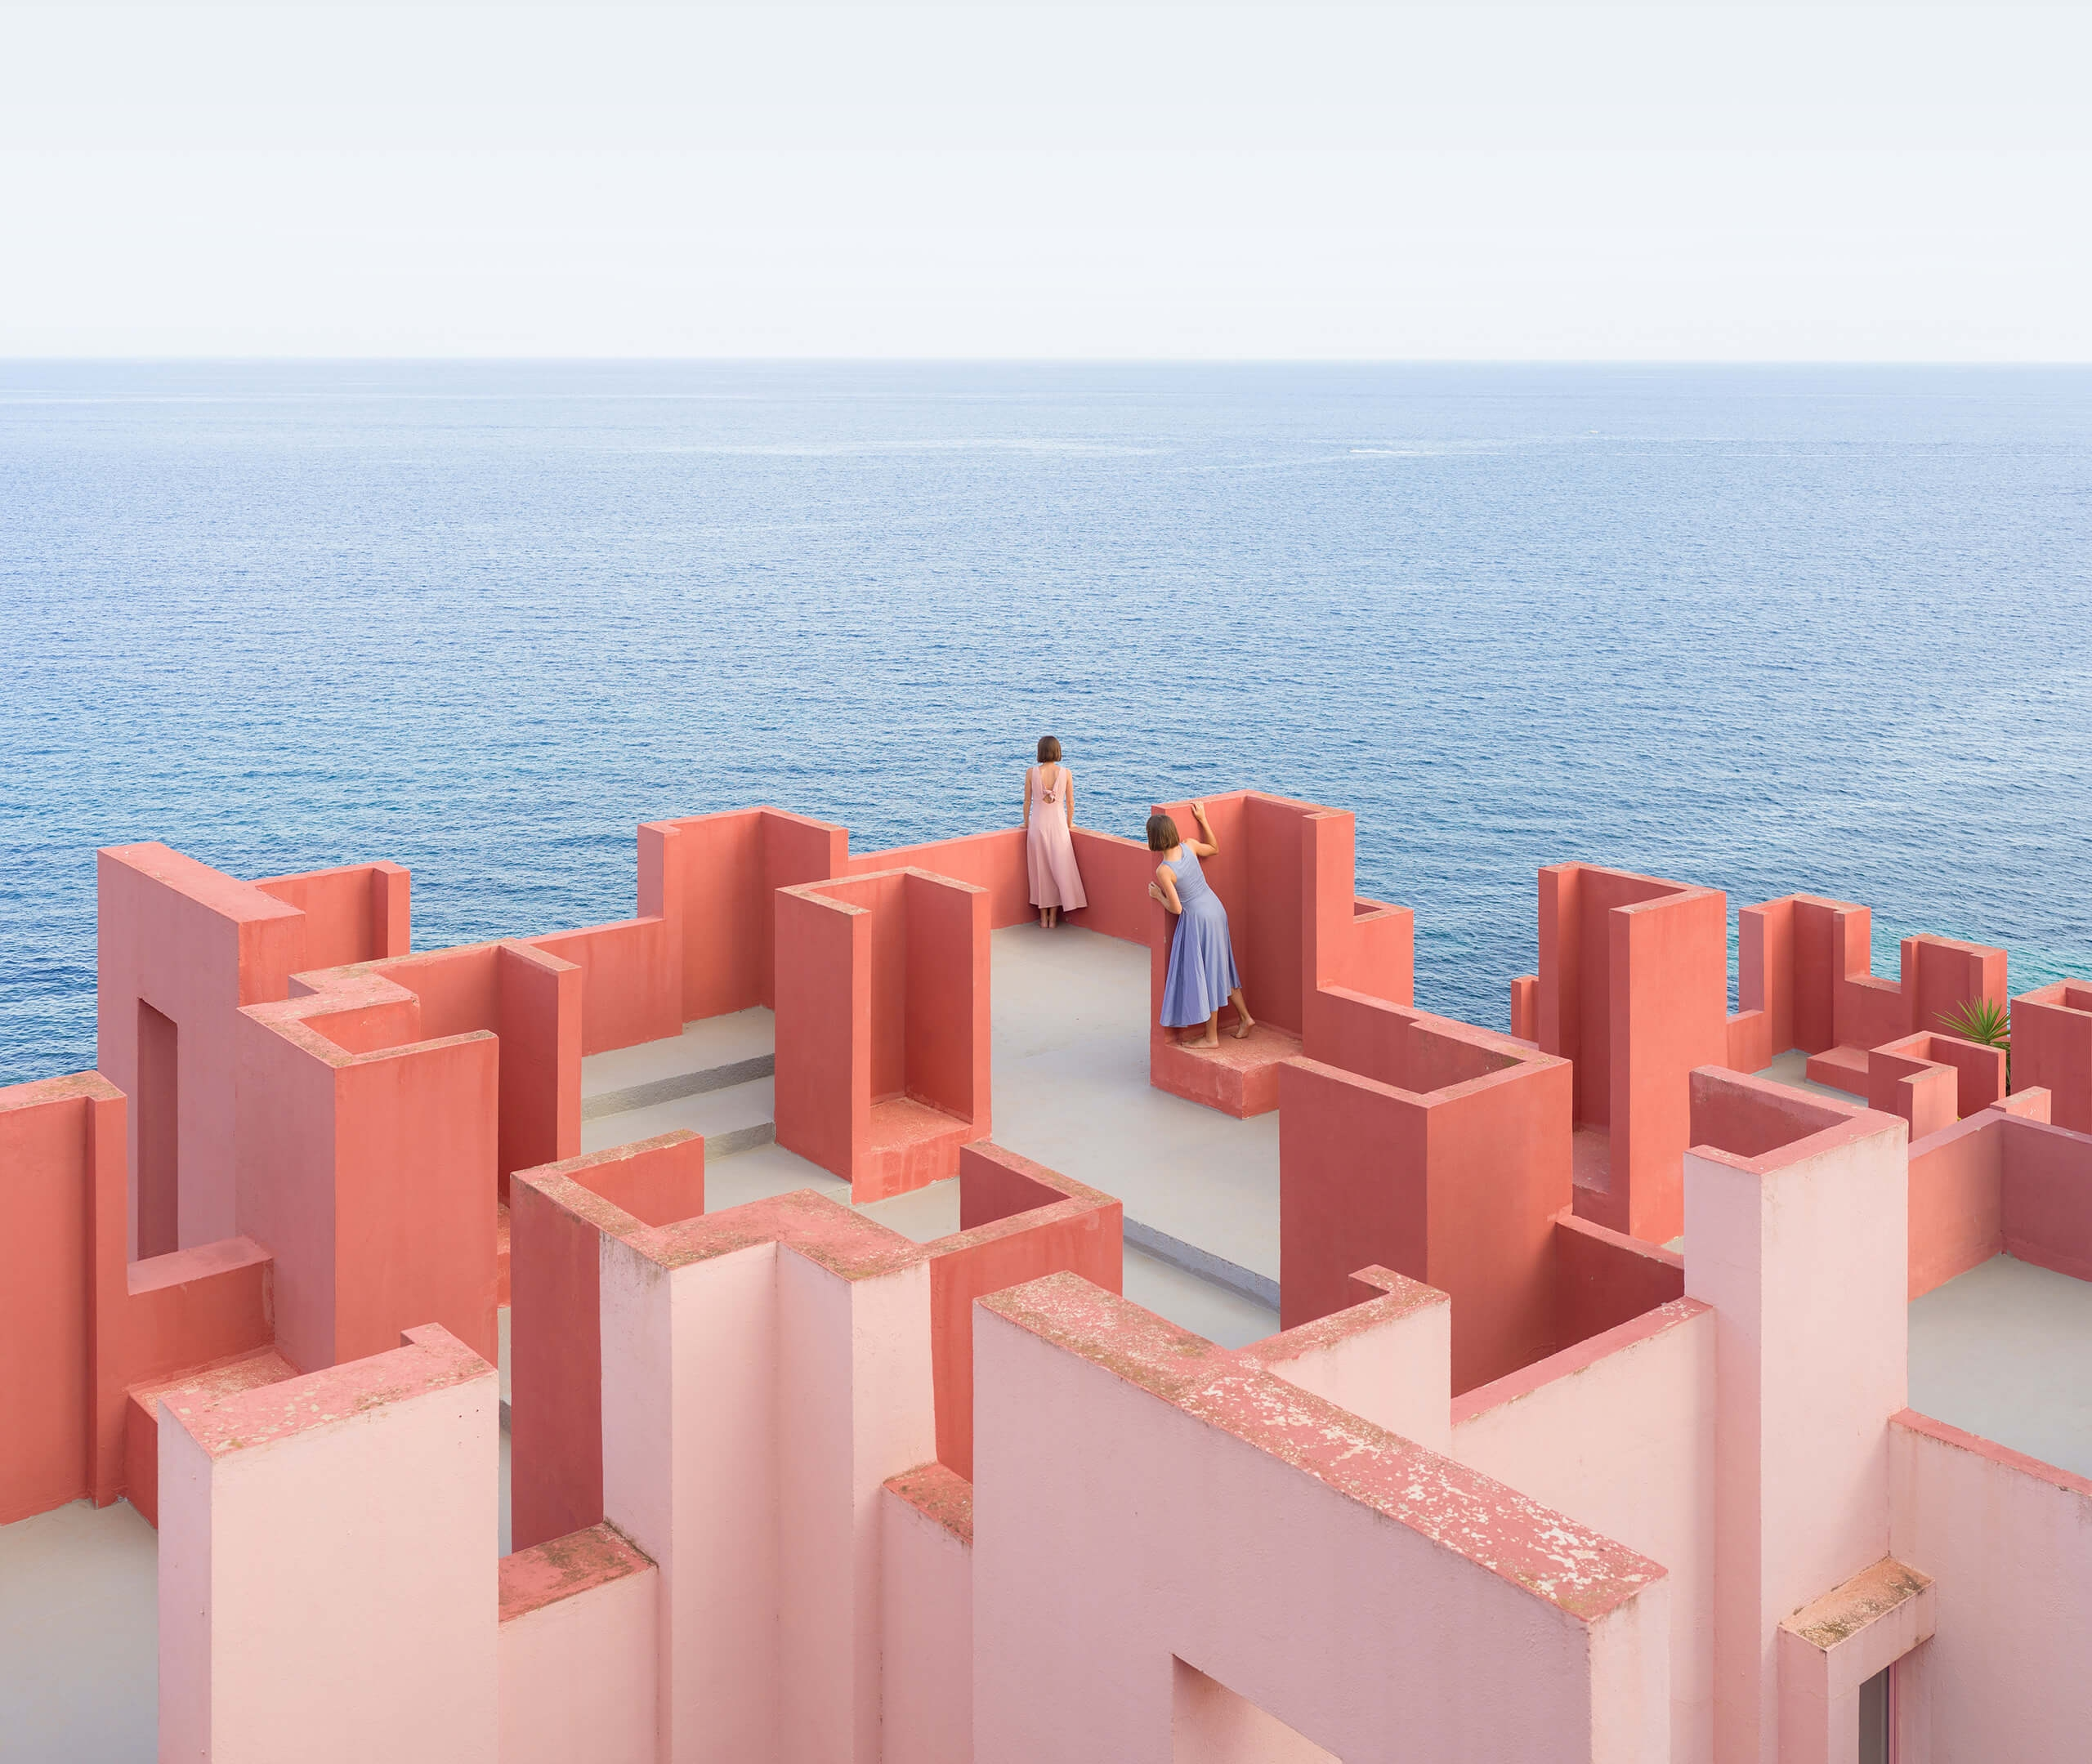 Pink A Boo: A Visual Game of Hide-and-Seek Inside La Muralla Roja